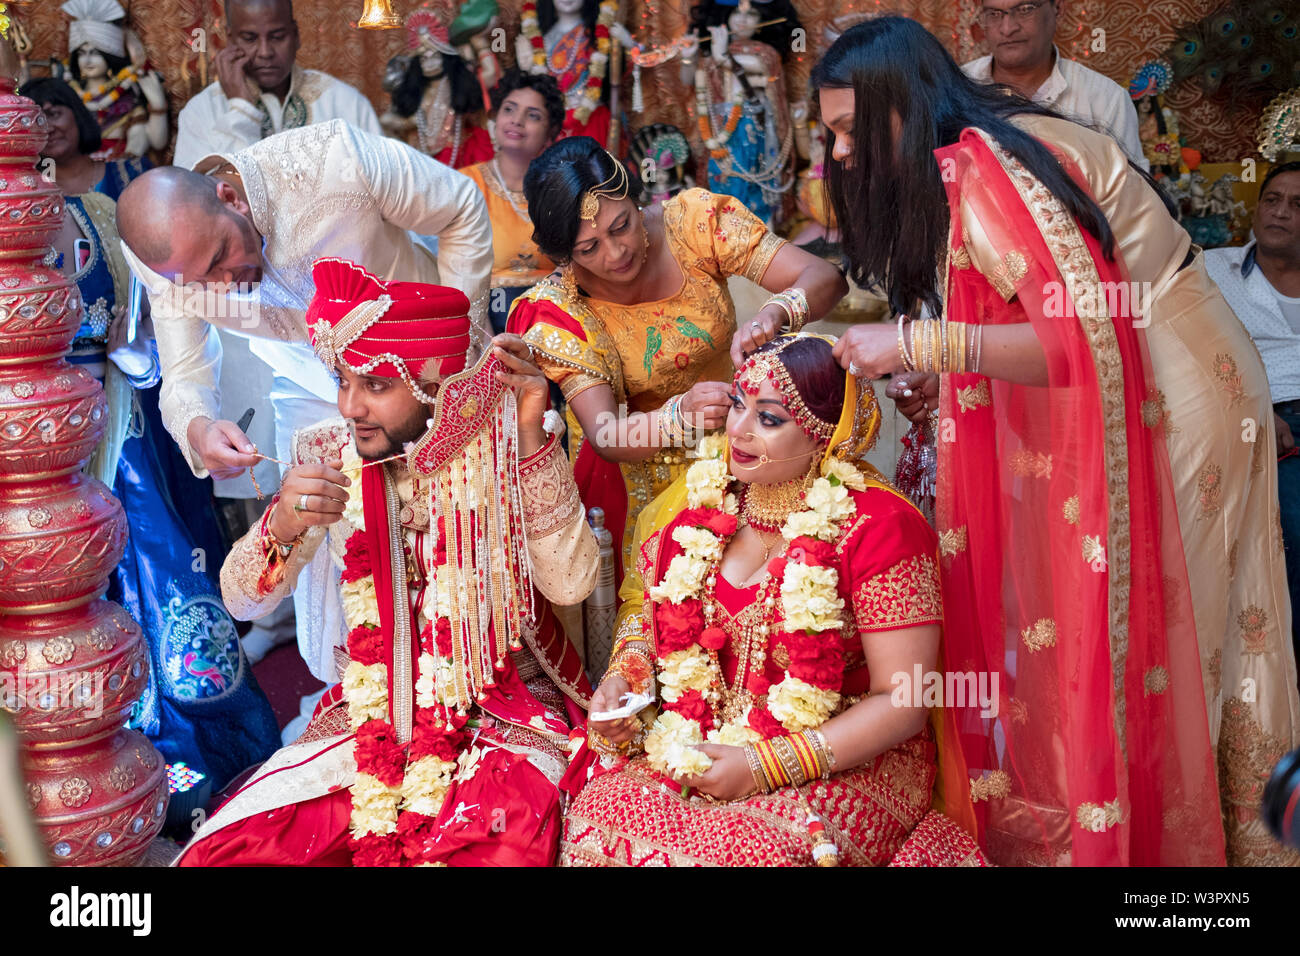 Near the conclusion of a traditional Hindu wedding, family members remove the face coverings from the bride & groom. In Queens, New York City. Stock Photo